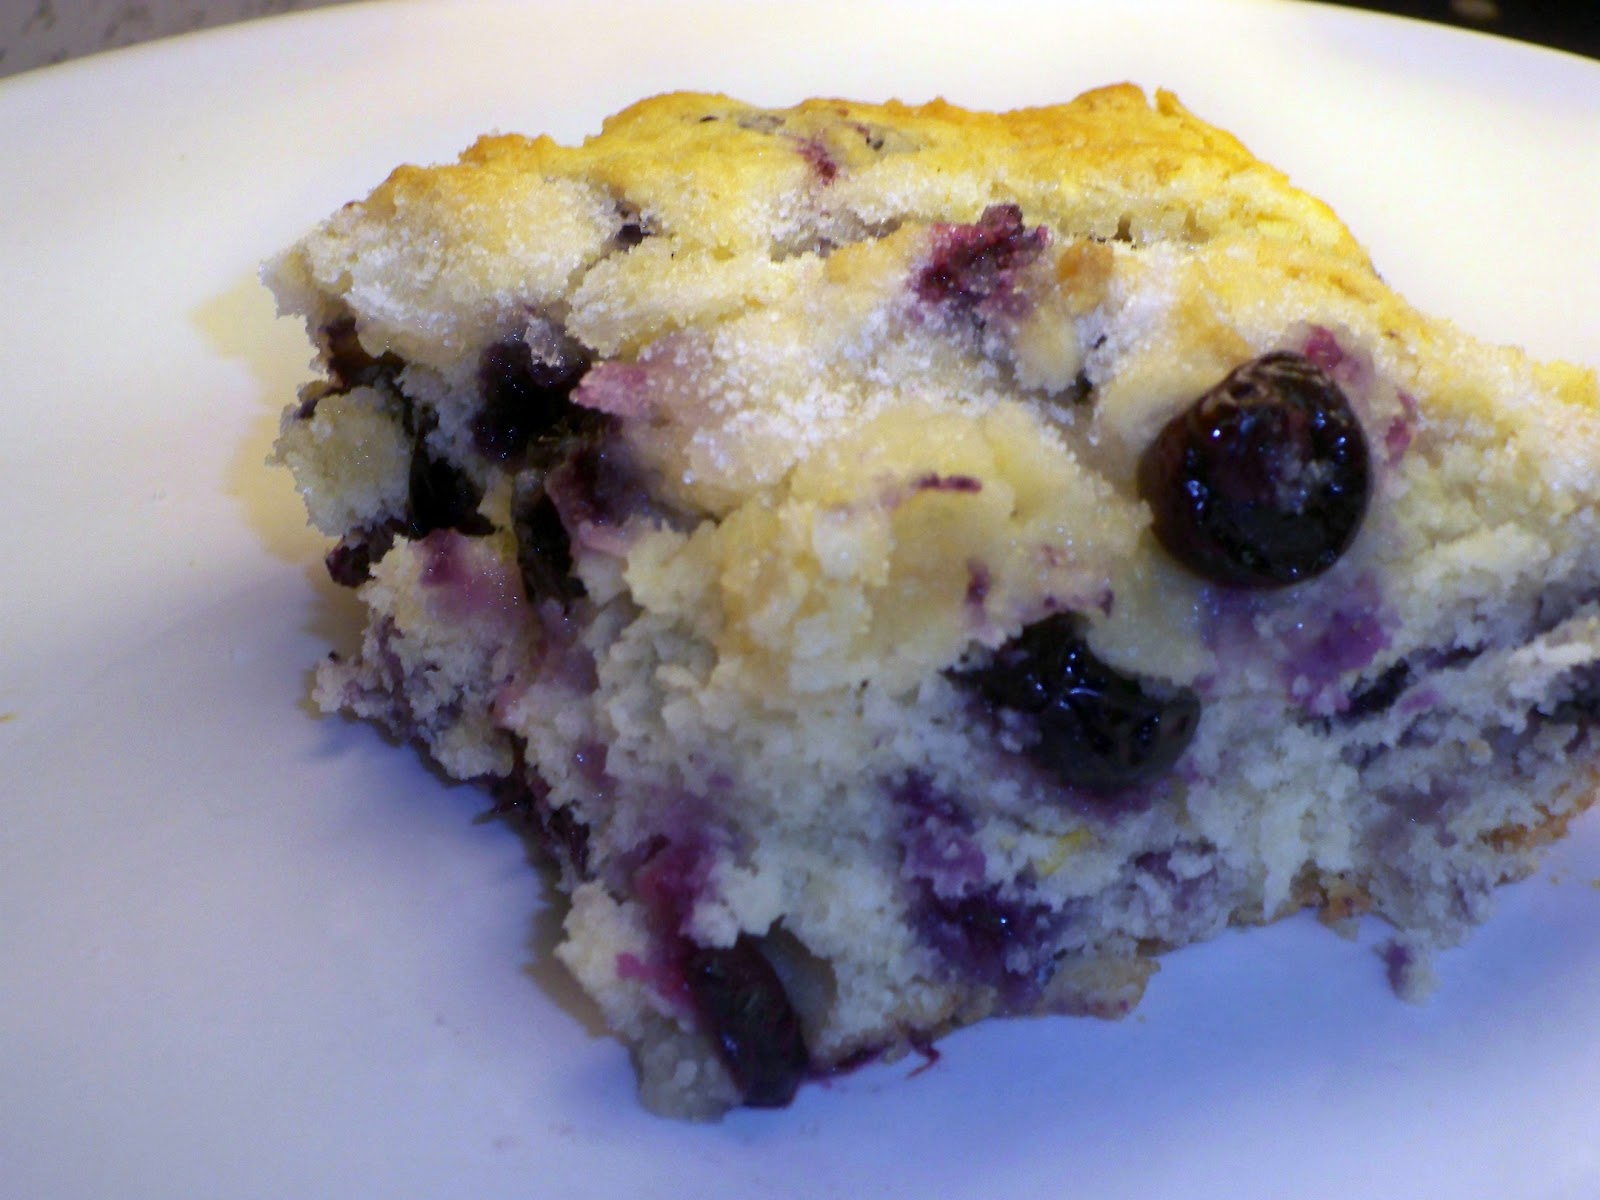 Gramma's in the kitchen: Buttermilk-Blueberry Breakfast Cake